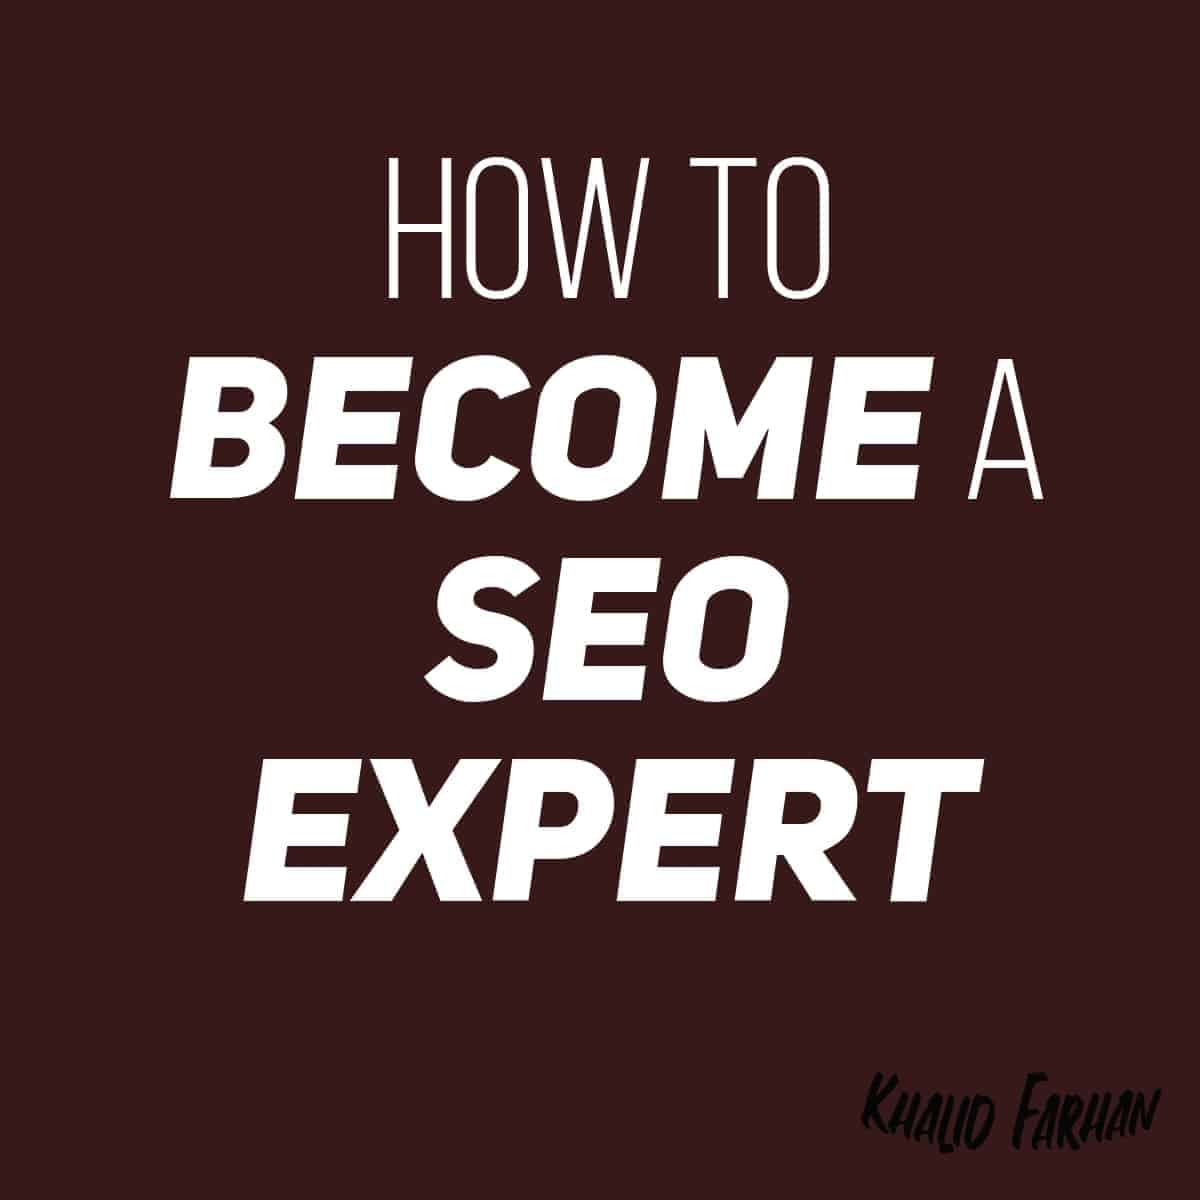 How to become a SEO Expert